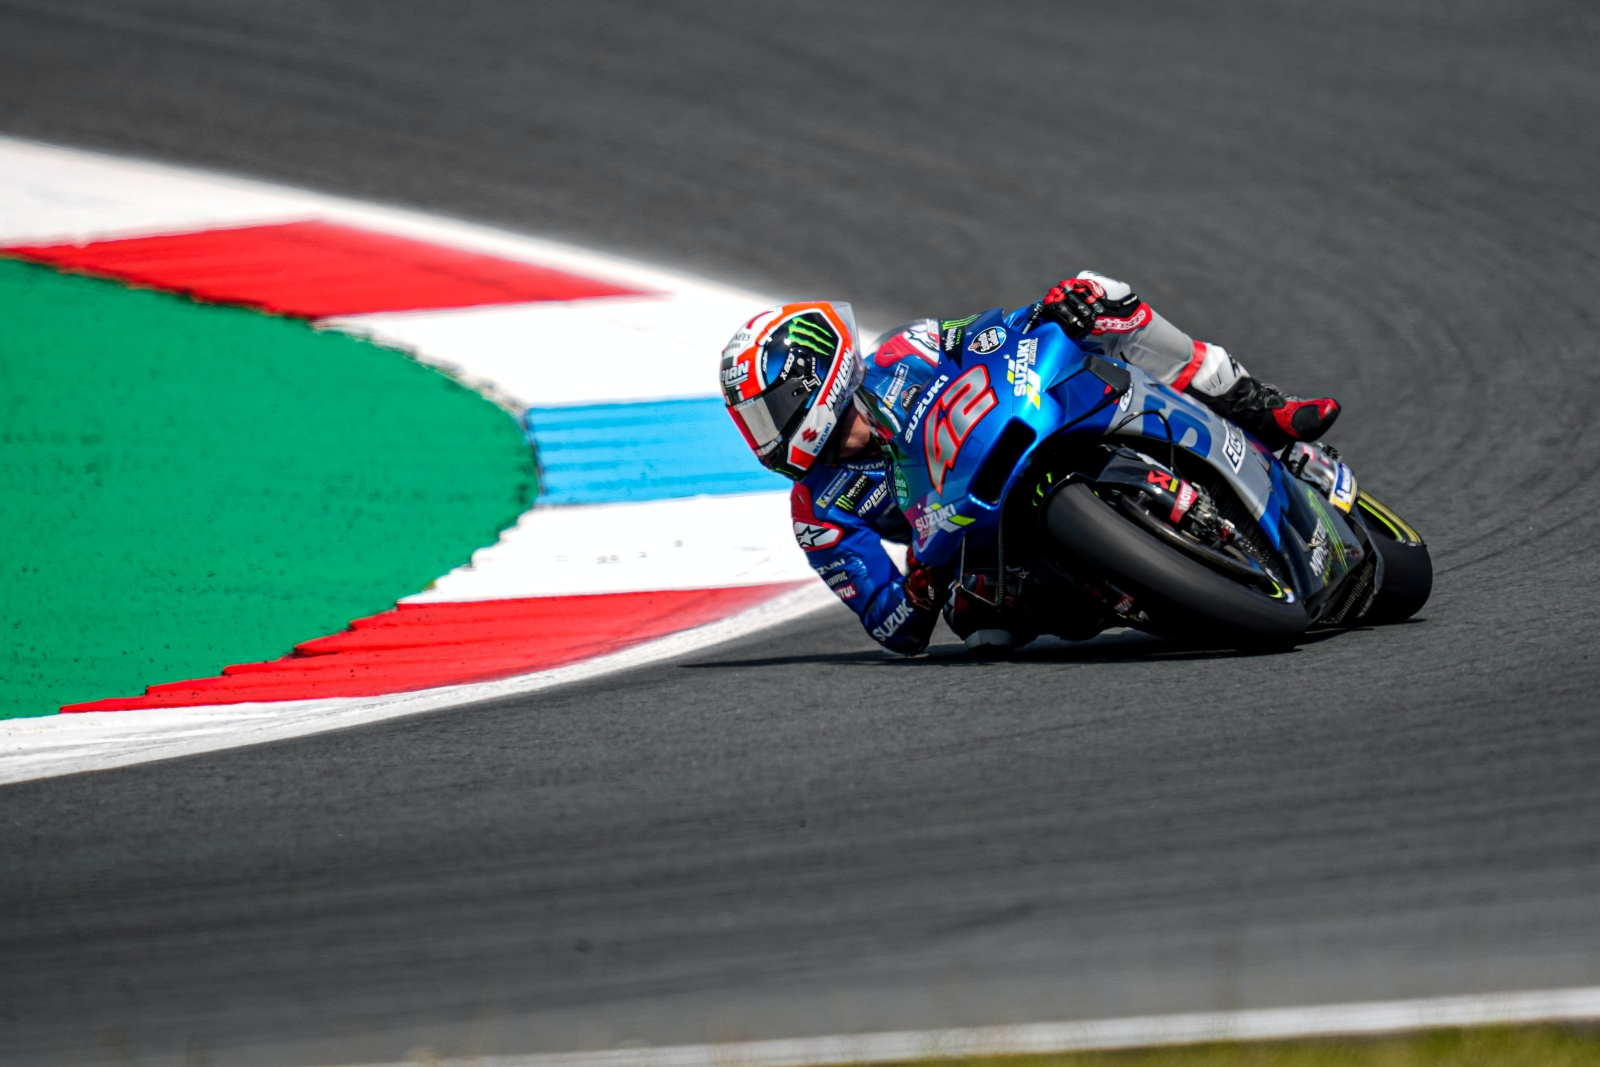 MIR MAKES GREAT PODIUM RETURN, RINS FIGHTS BACK TO 11TH